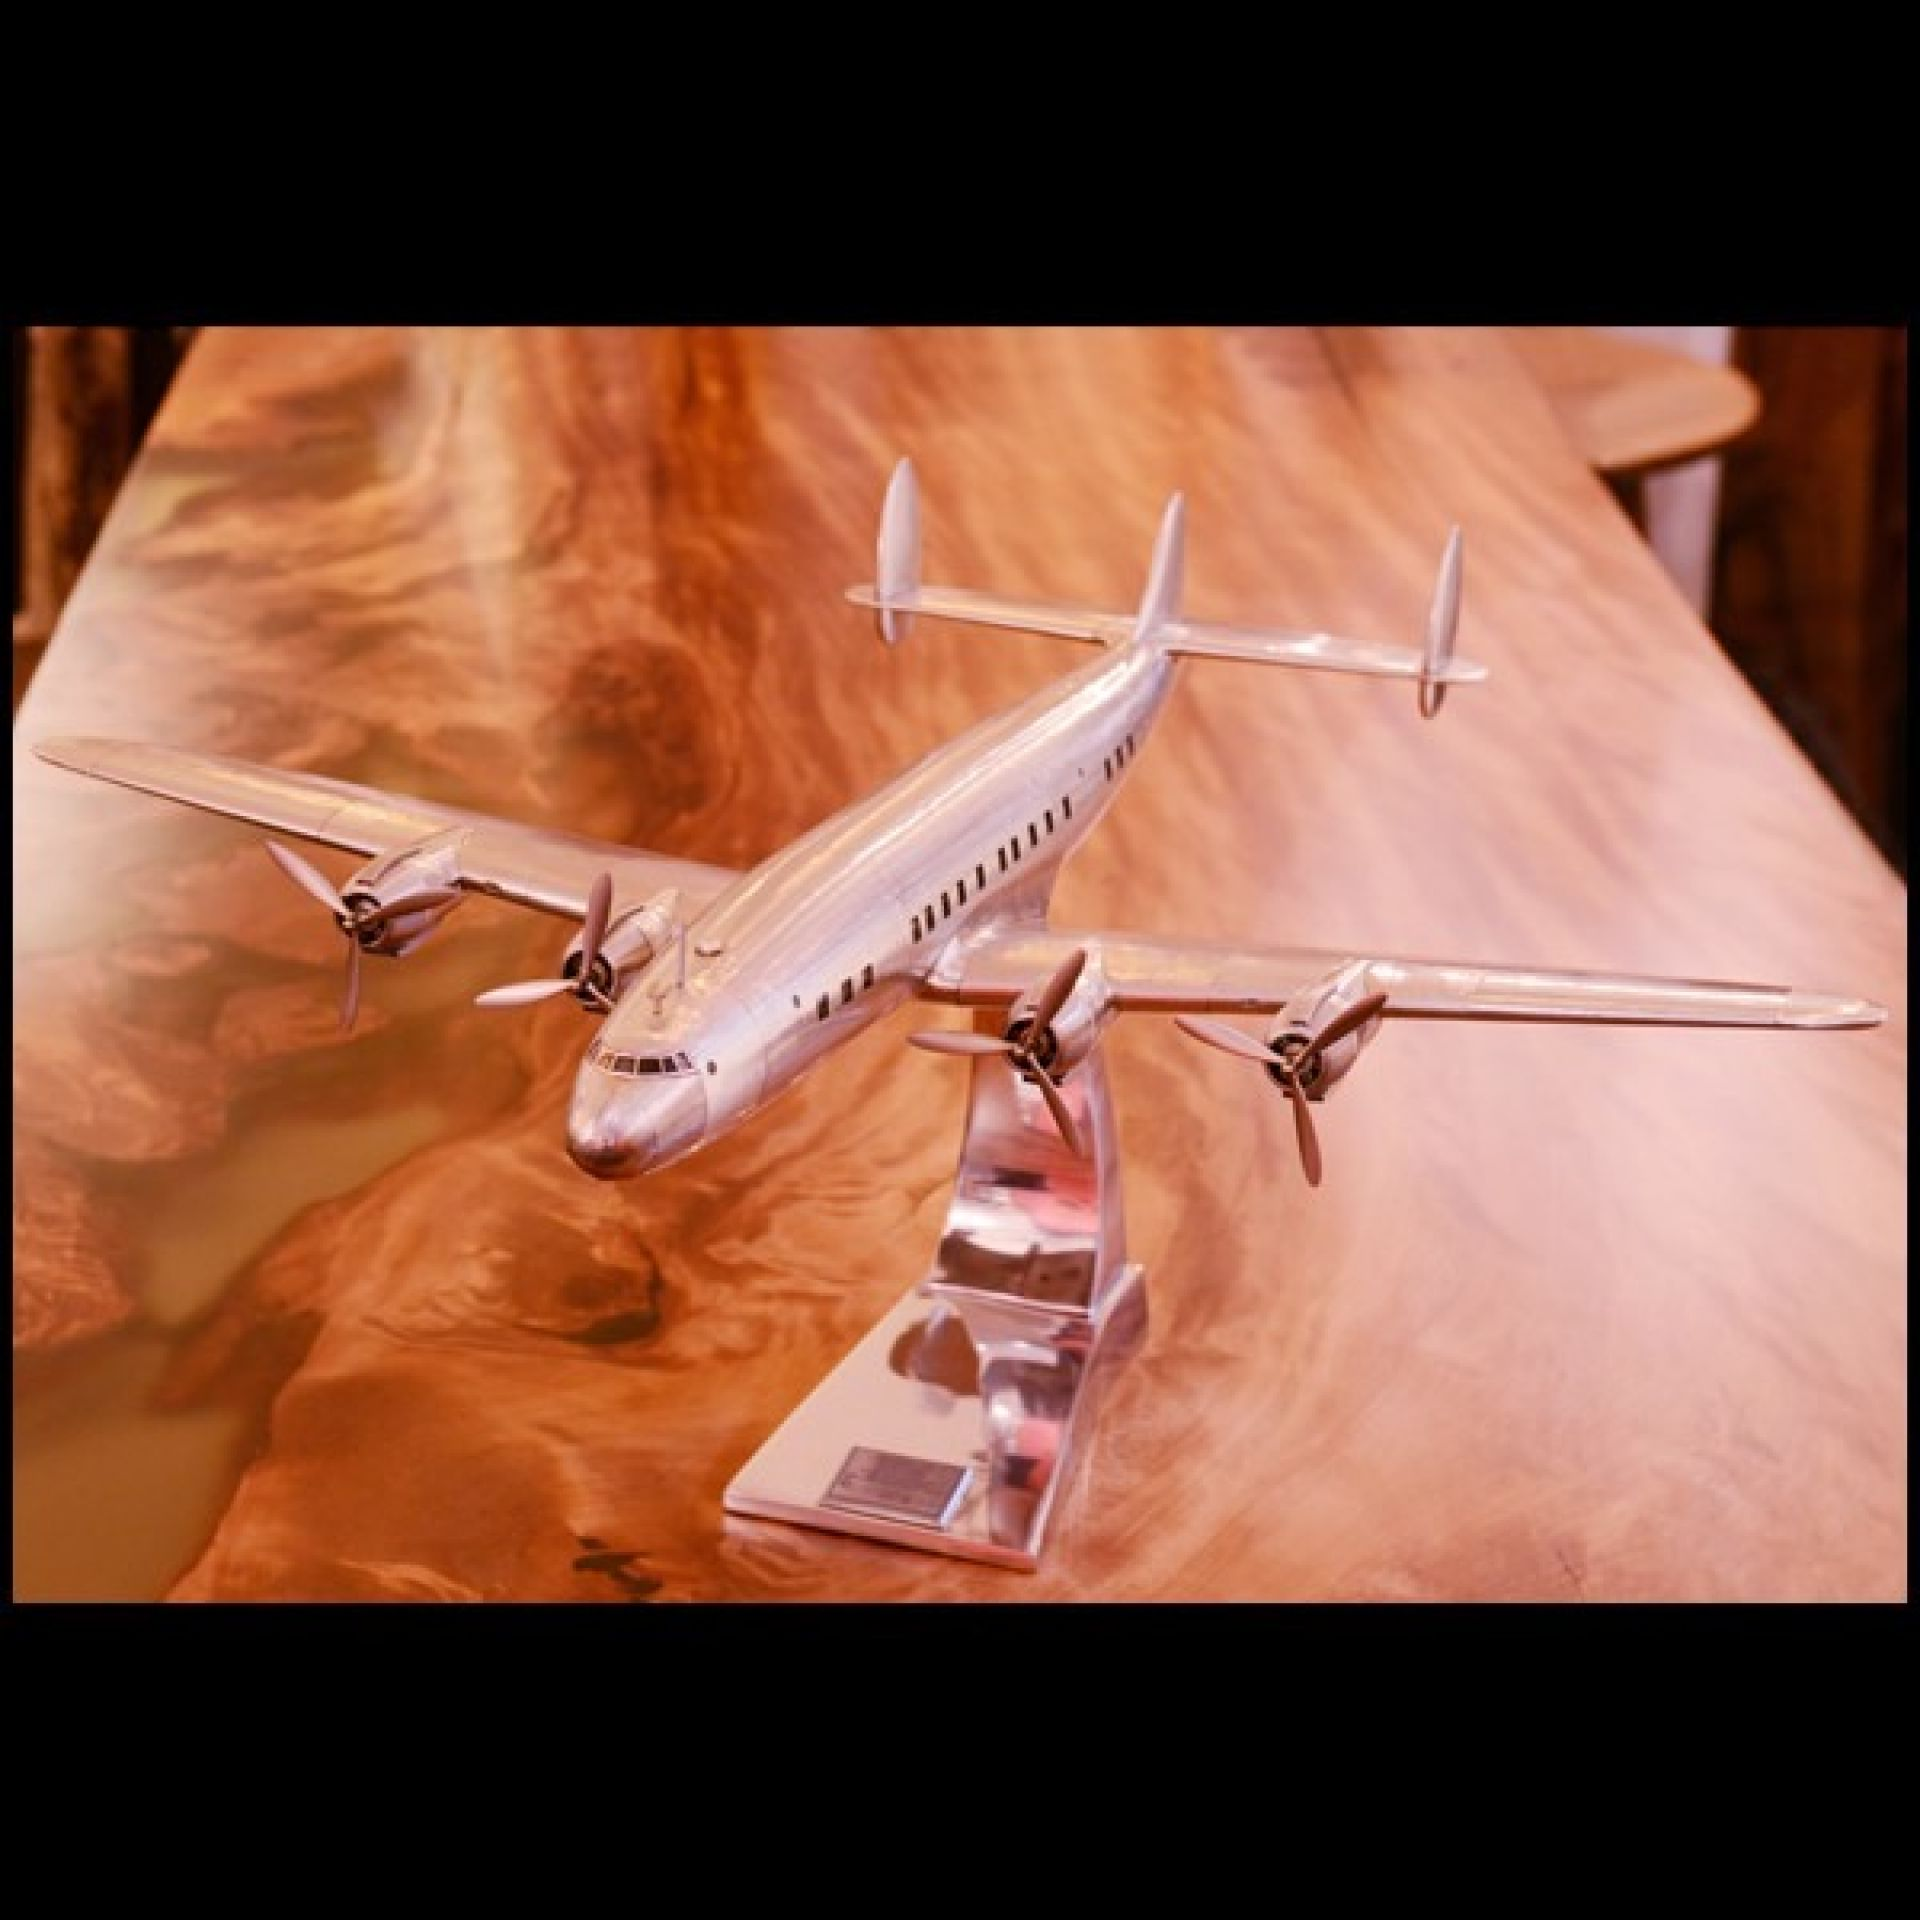 AIRPLANE MODEL MADE BY HAND WITH LIGHTWEIGHT ALUMINUM FOIL FRAME